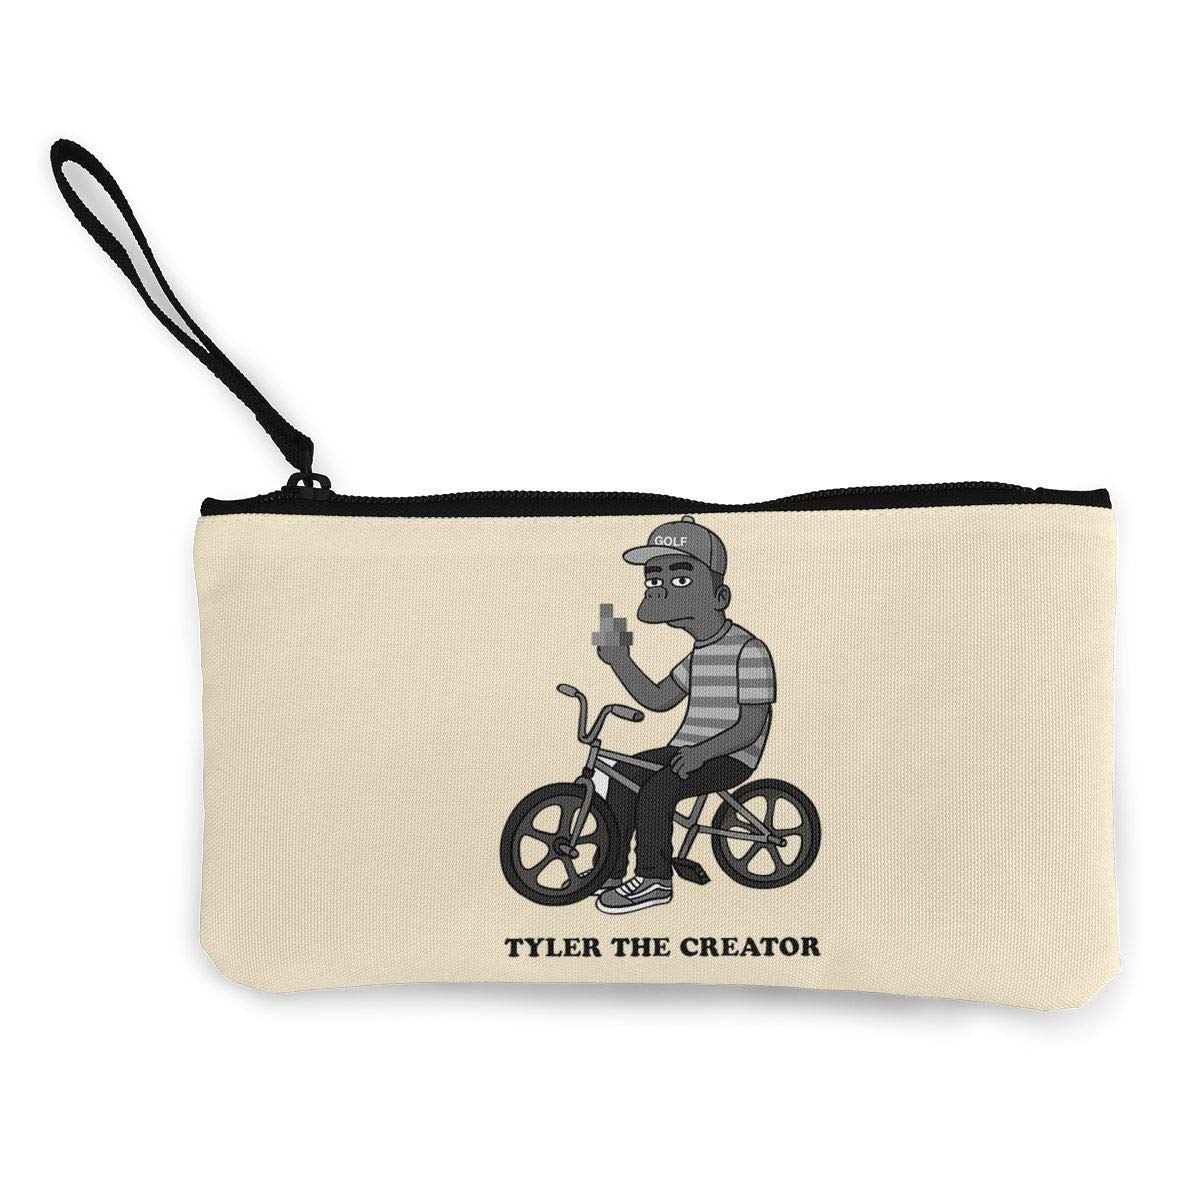 Tyler The Creator Canvas Cash Coin Purse Make Up Bag Cellphone Bag With Zipper And Handle